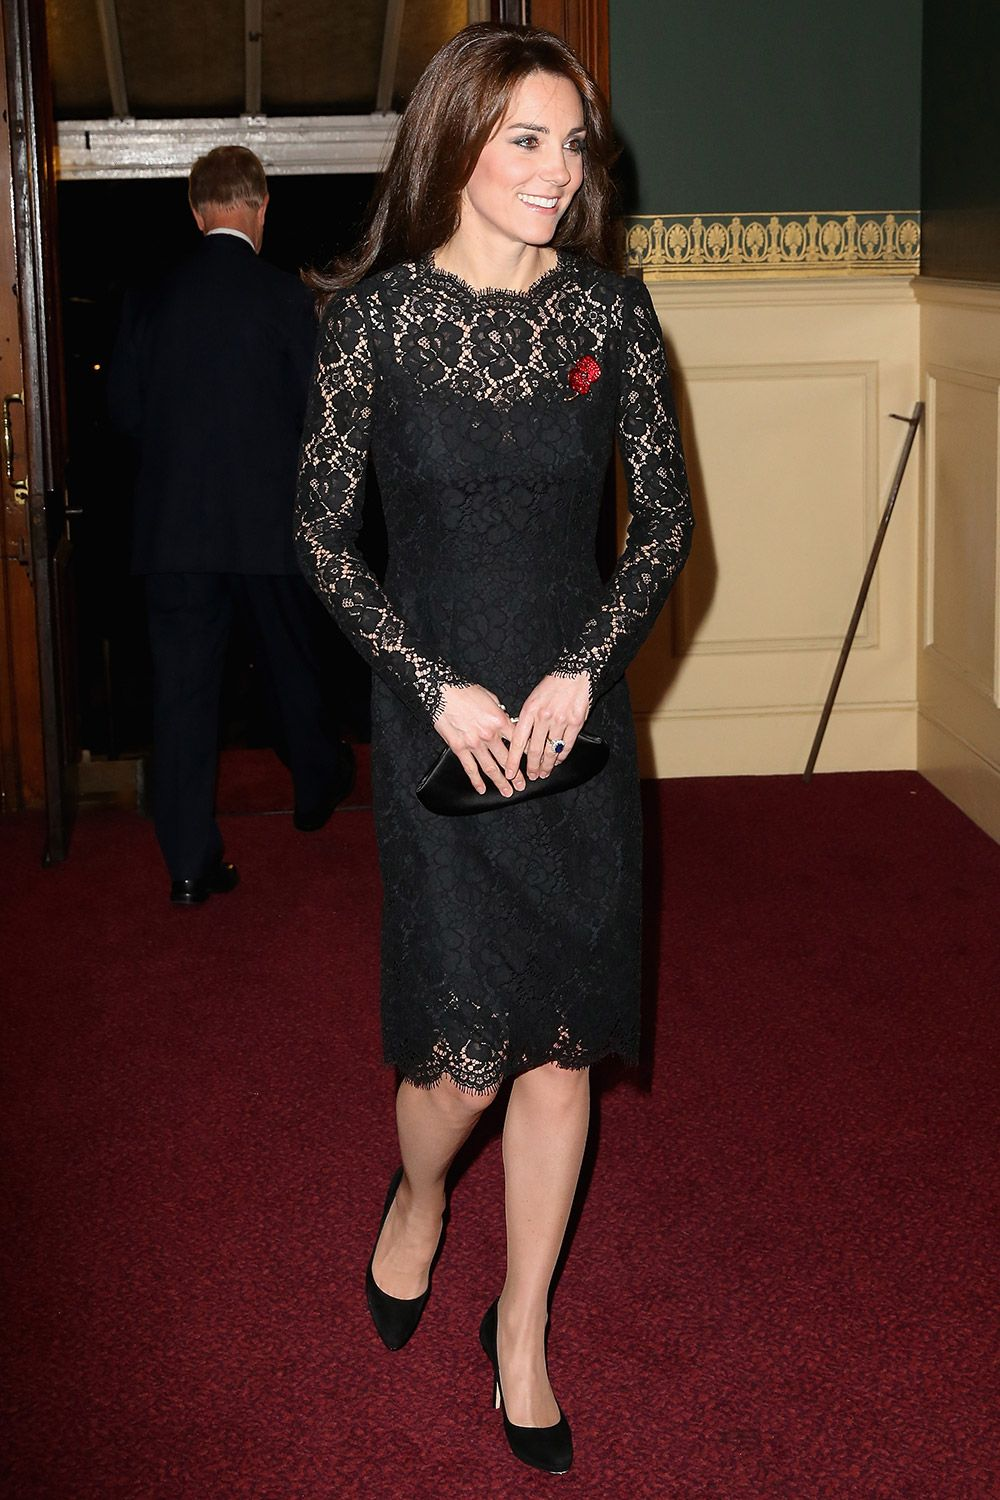 11.07.15  Kate Middleton in Dolce & Gabbana at Royal Albert Hall for Annual Festival of Remembrance